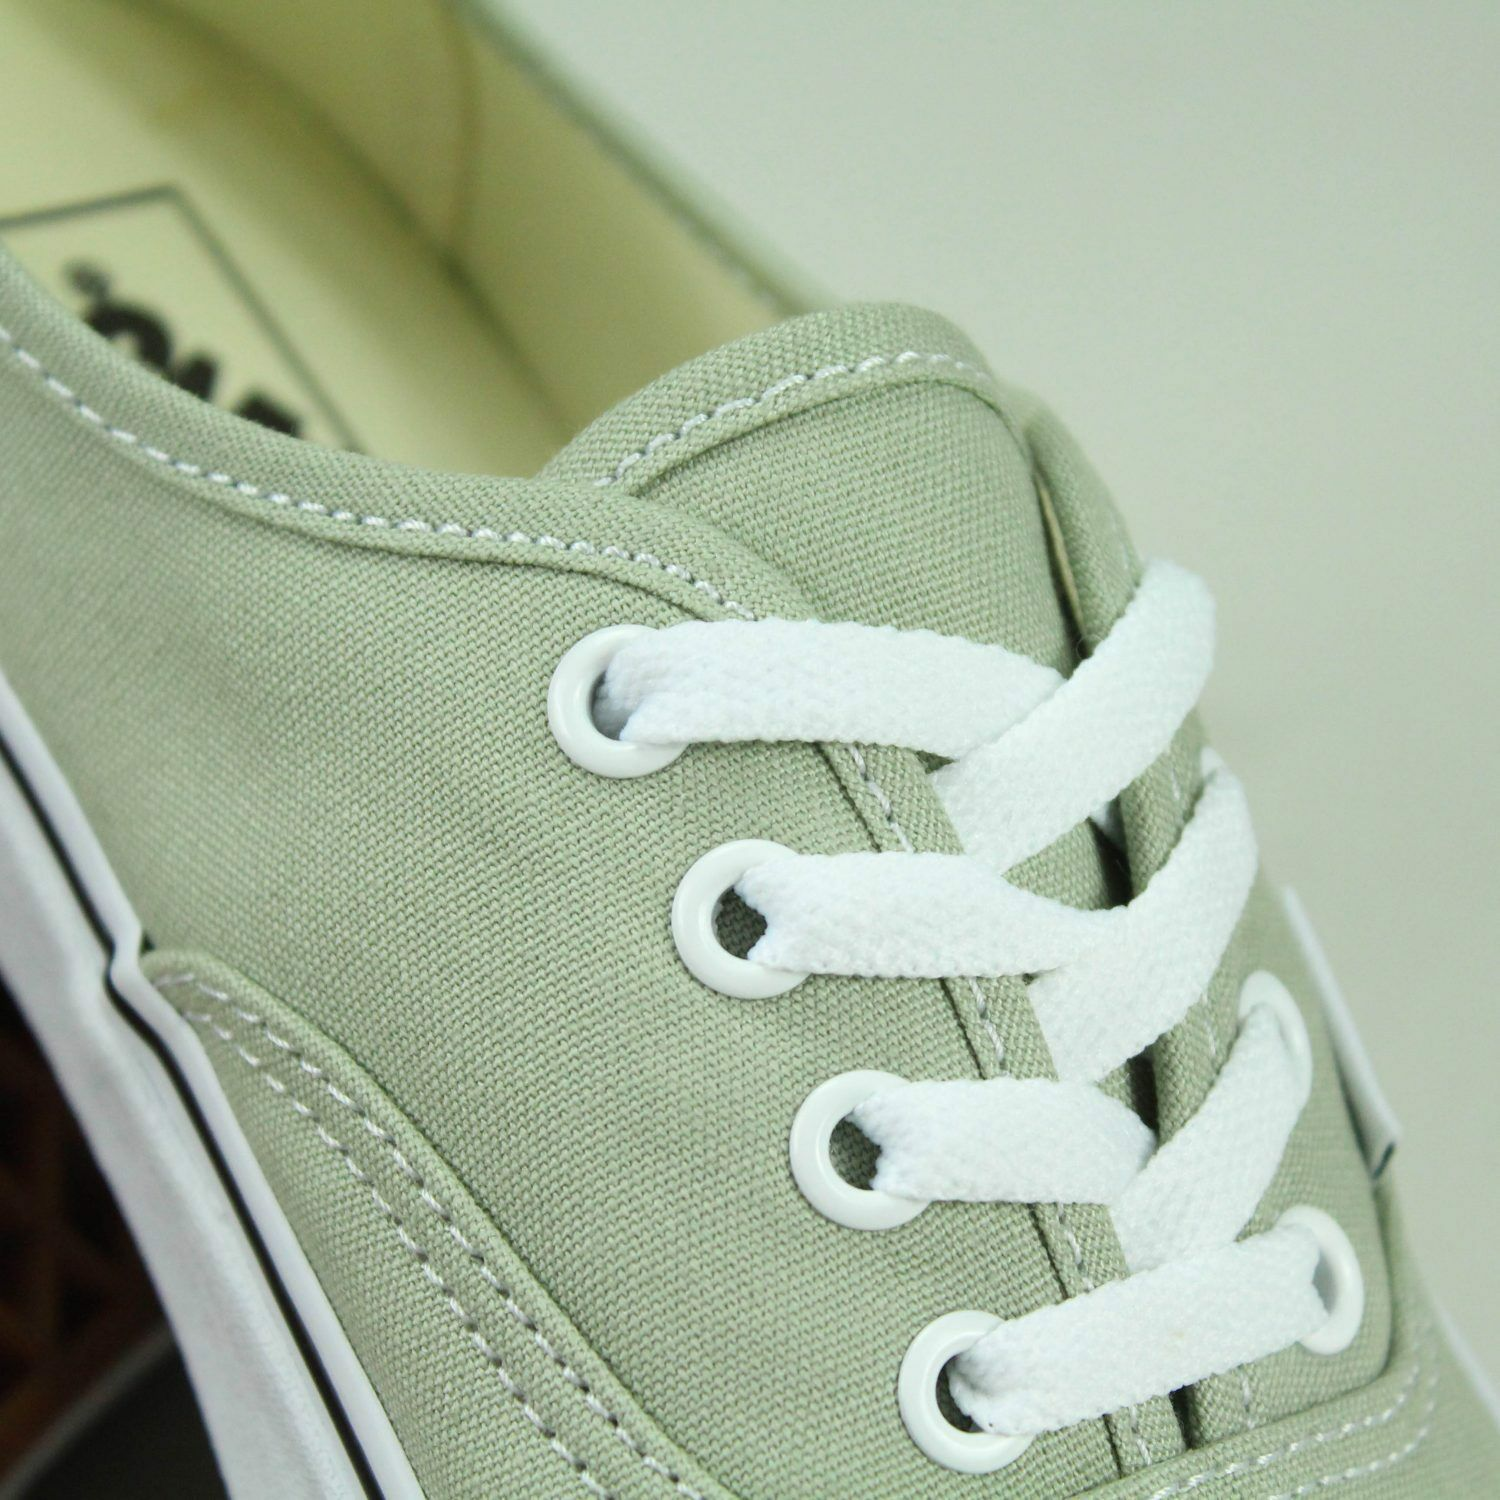 Vans Authentic Trainers in Desert Sage Brand New in Trainers box UK Größes 4,5,6,7,8,9,10,11 65d2ba